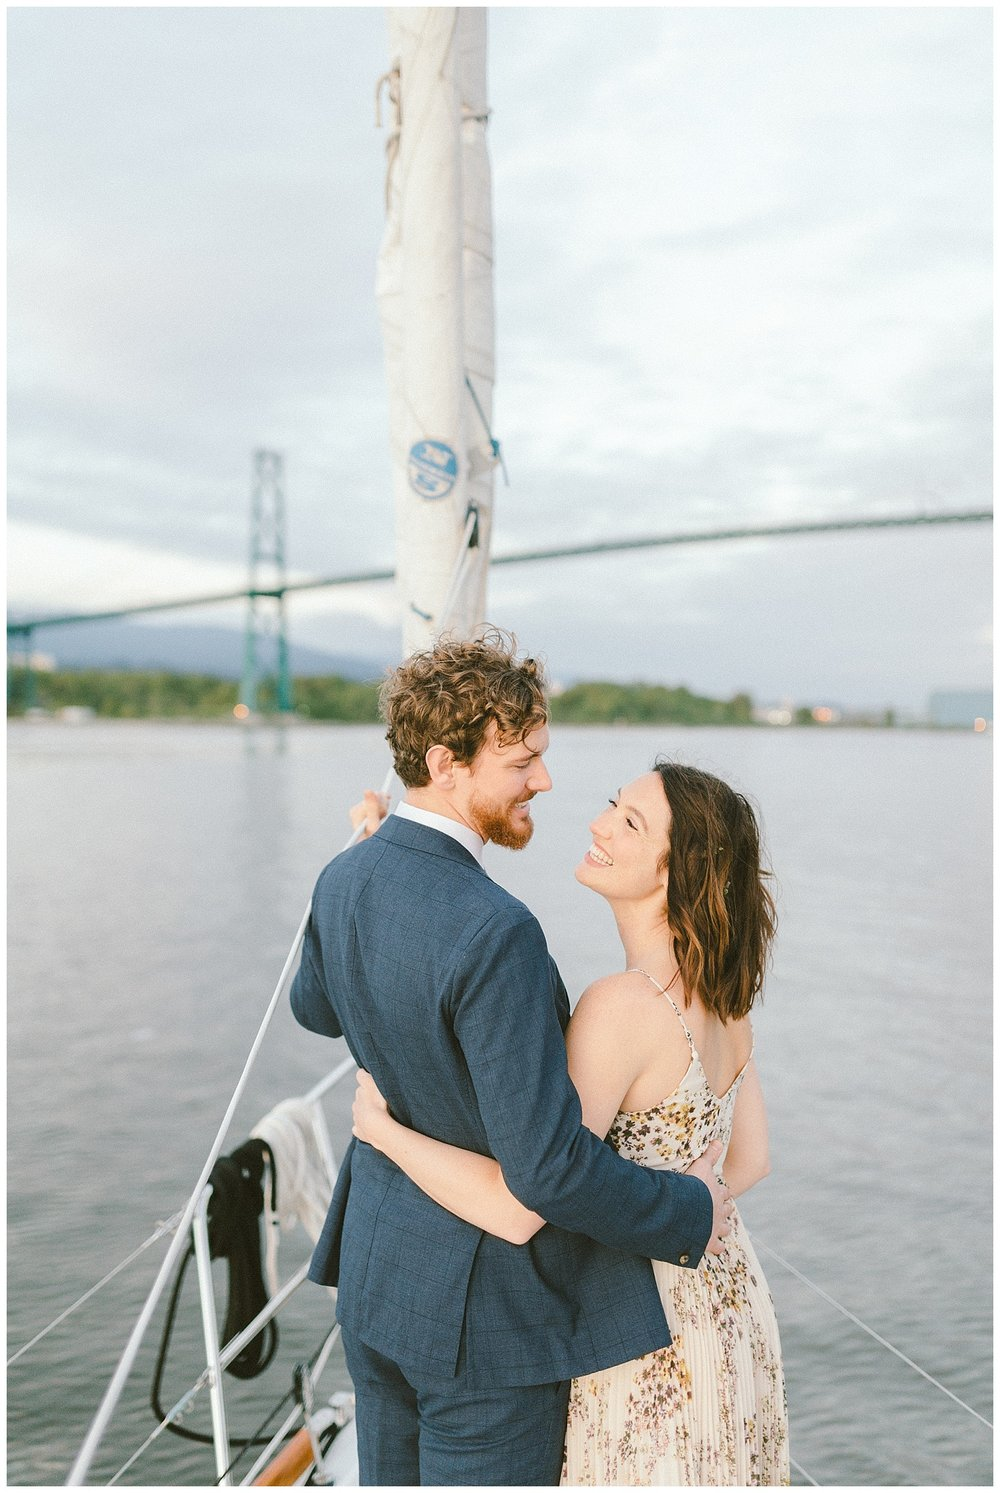 Hong Kong Vancouver fine art prewedding wedding photography photographer Mattie C.00060.jpg